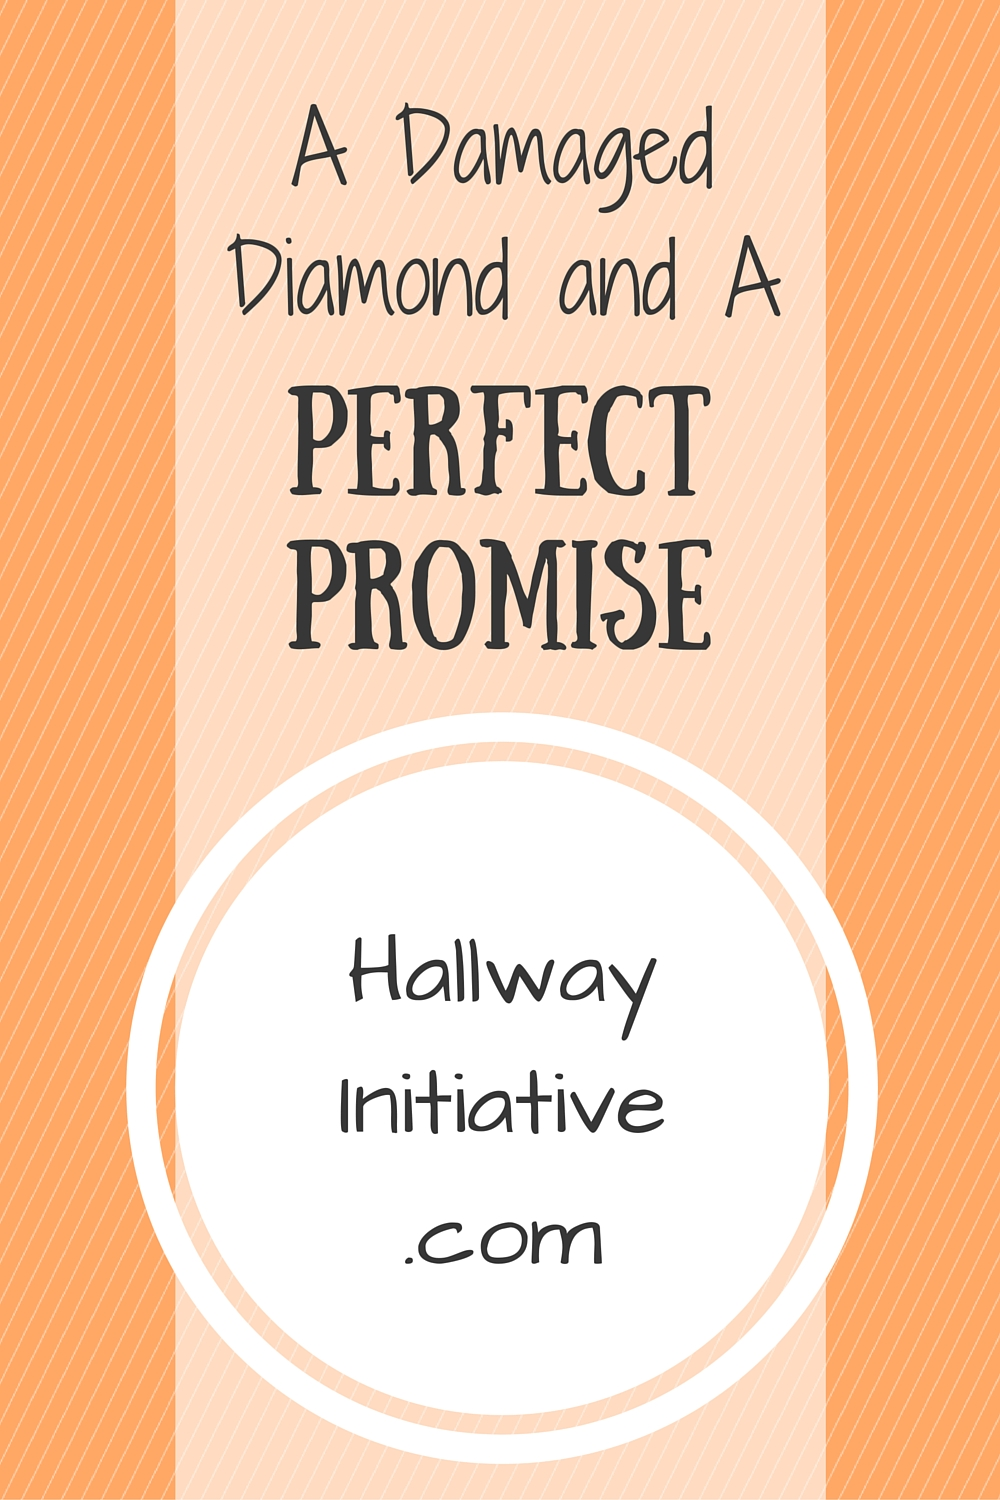 A damaged diamond and a perfect promise